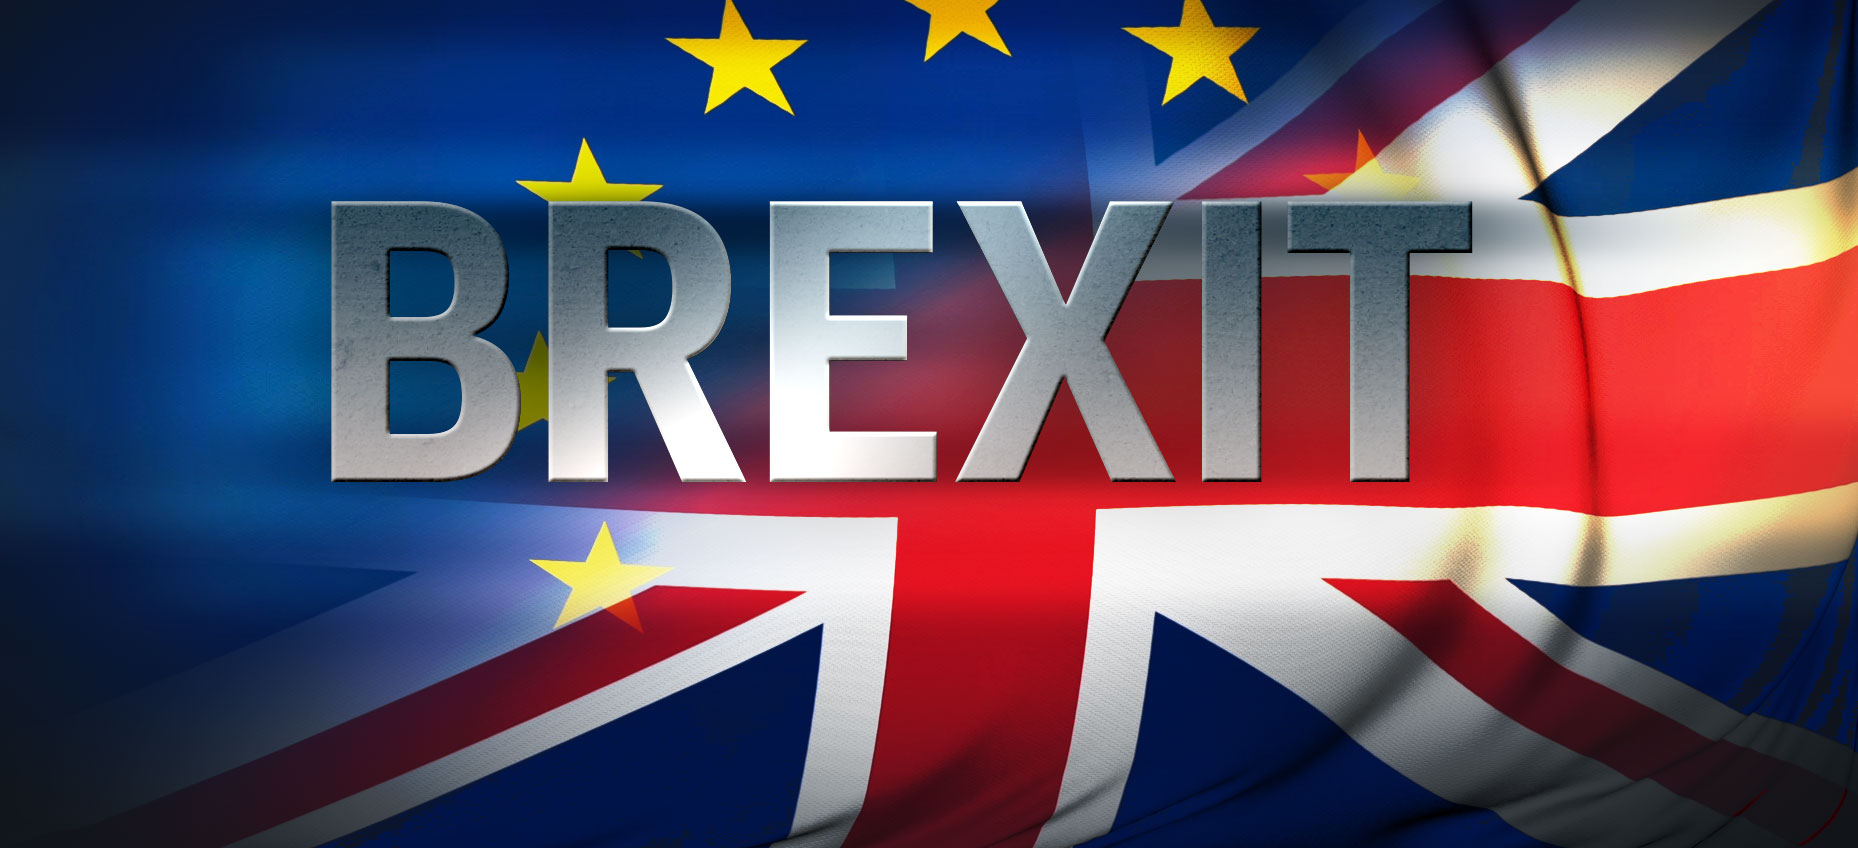 Brexit British Exit From European Union